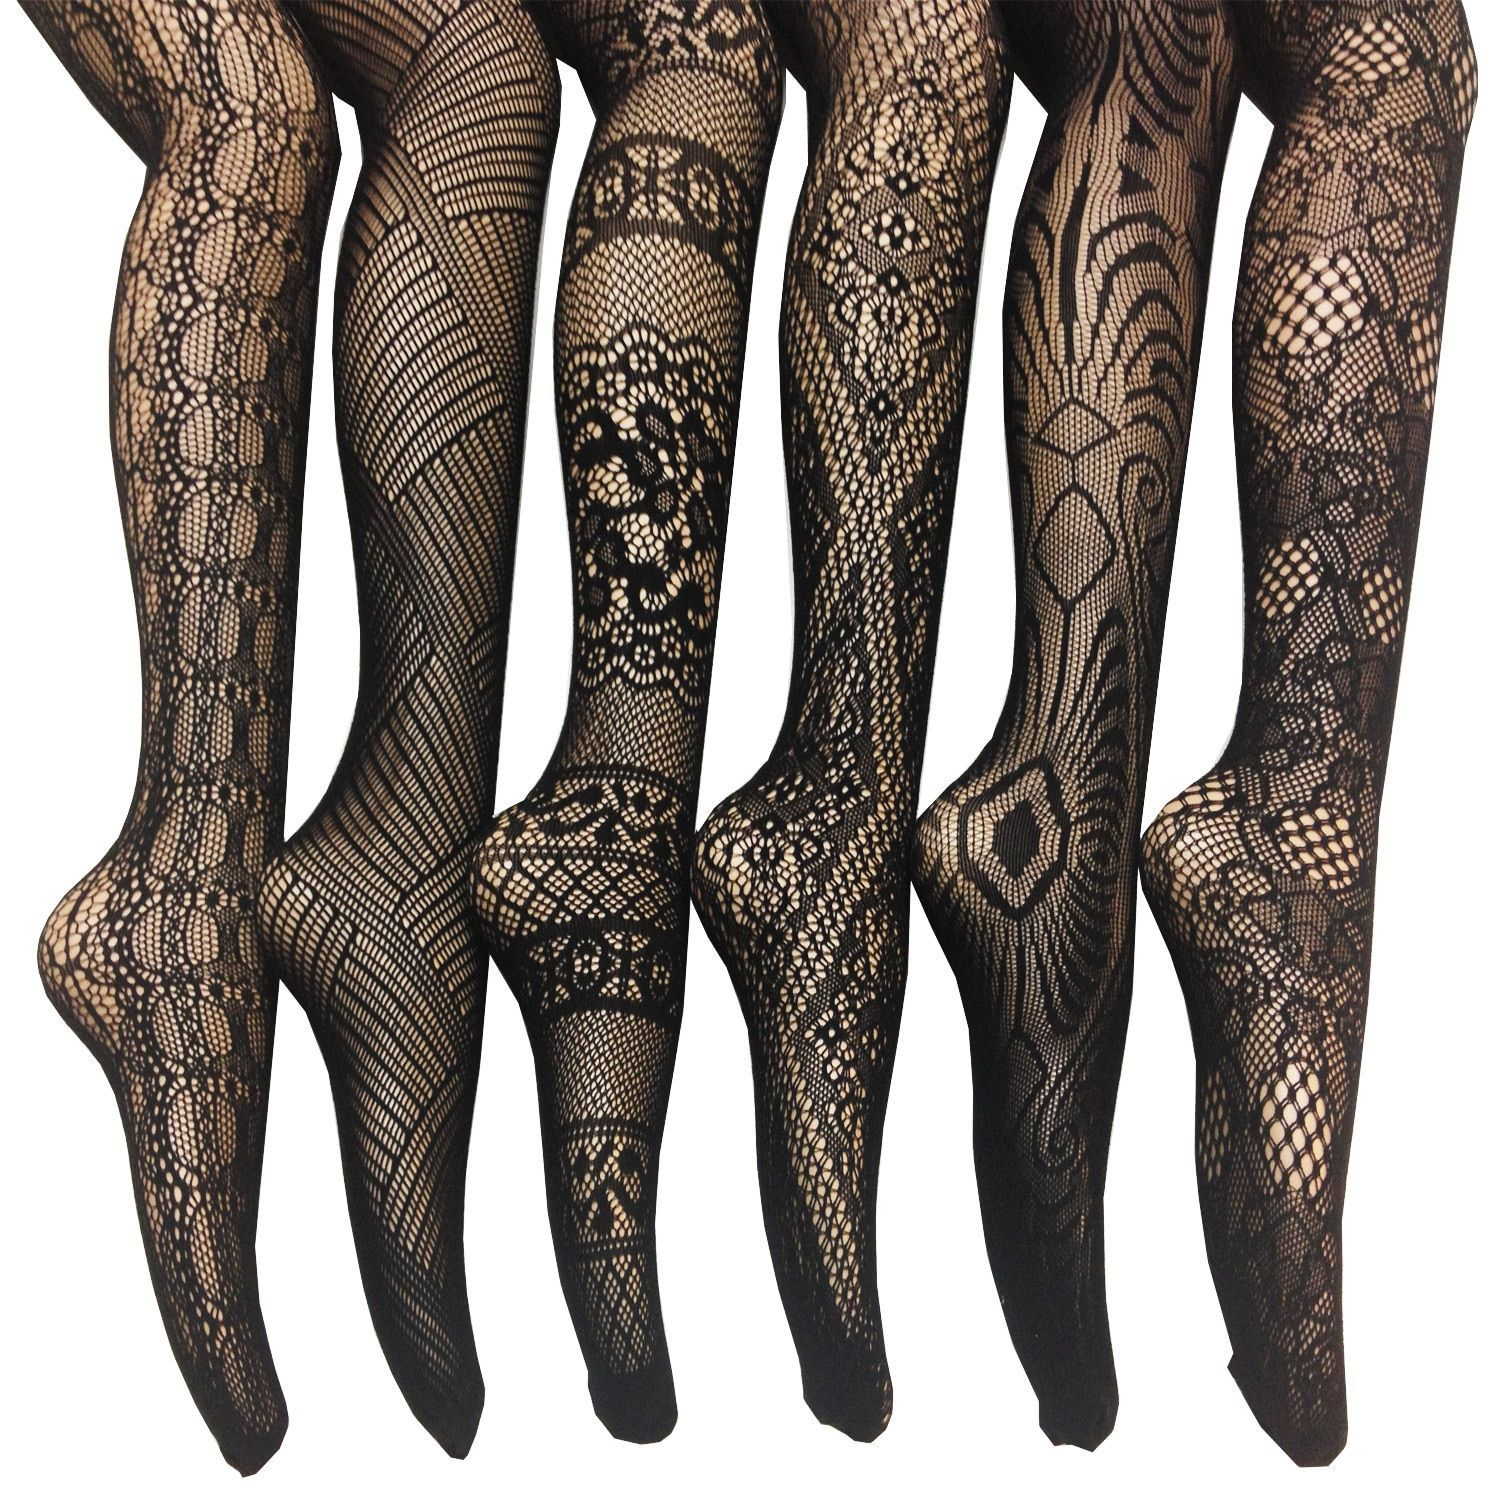 4a254420aca18 Women's Black Nylon/Spandex Fishnet Lace Stocking Tights (Pack of 6) (M/L =  5'4